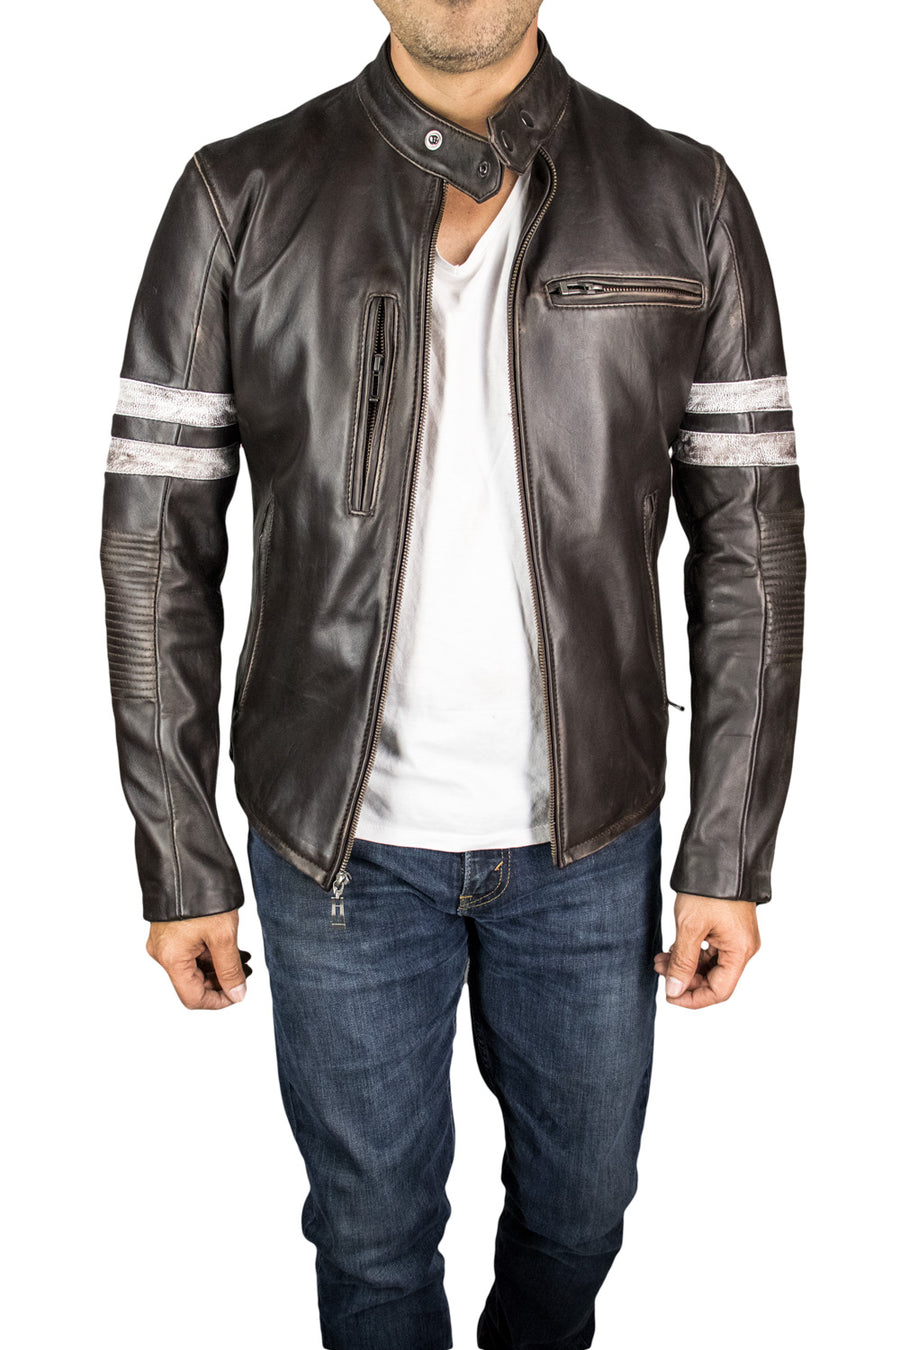 MUSTANG '18 Leather Jacket Distressed Brown - Cafe Racer Stripes